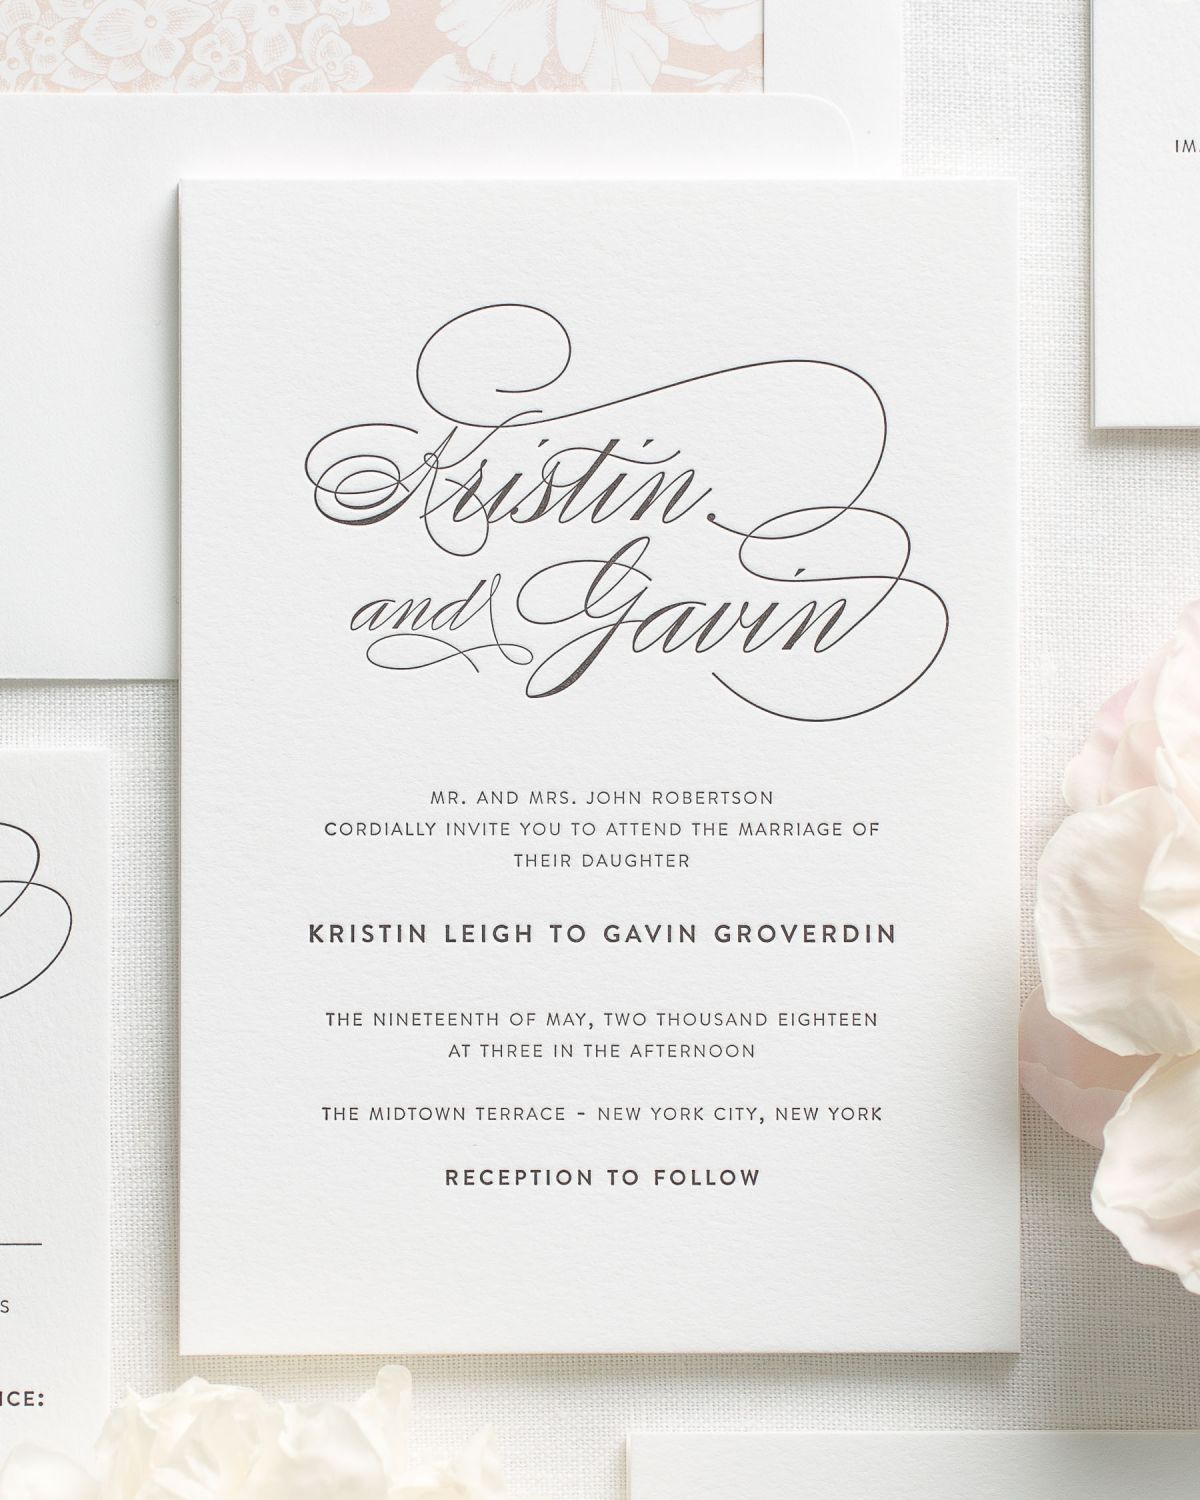 Script elegance letterpress wedding invitations for Letterpress wedding invitations manila philippines